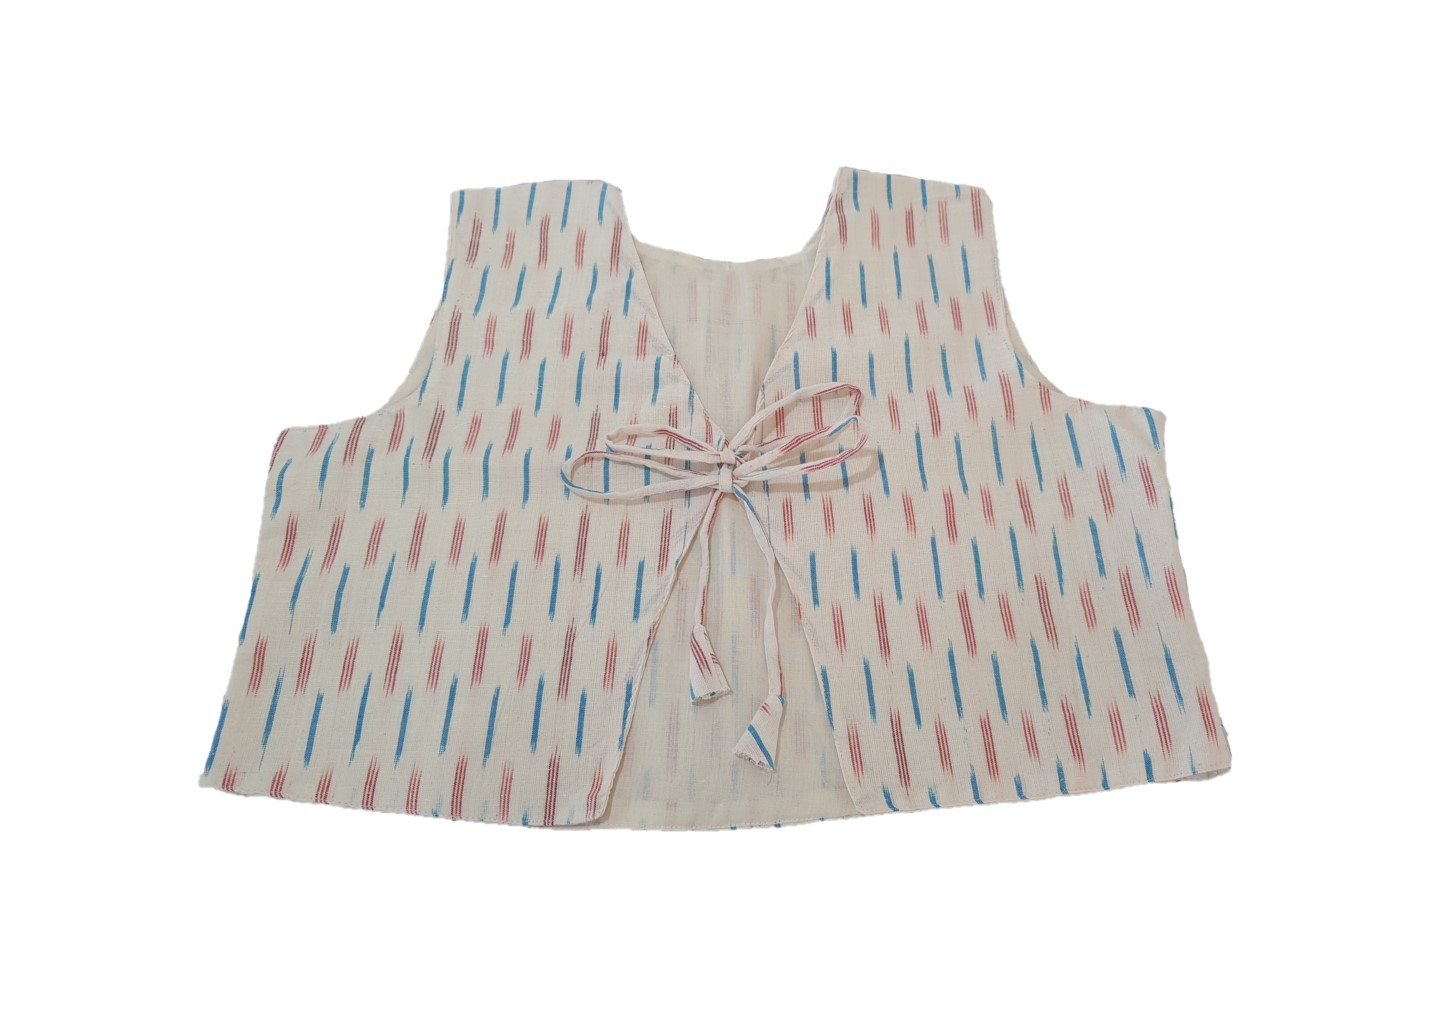 Pochampally Ikat Jacket Short Waist Coat with Front Knot OffWhite Size Large : Picture